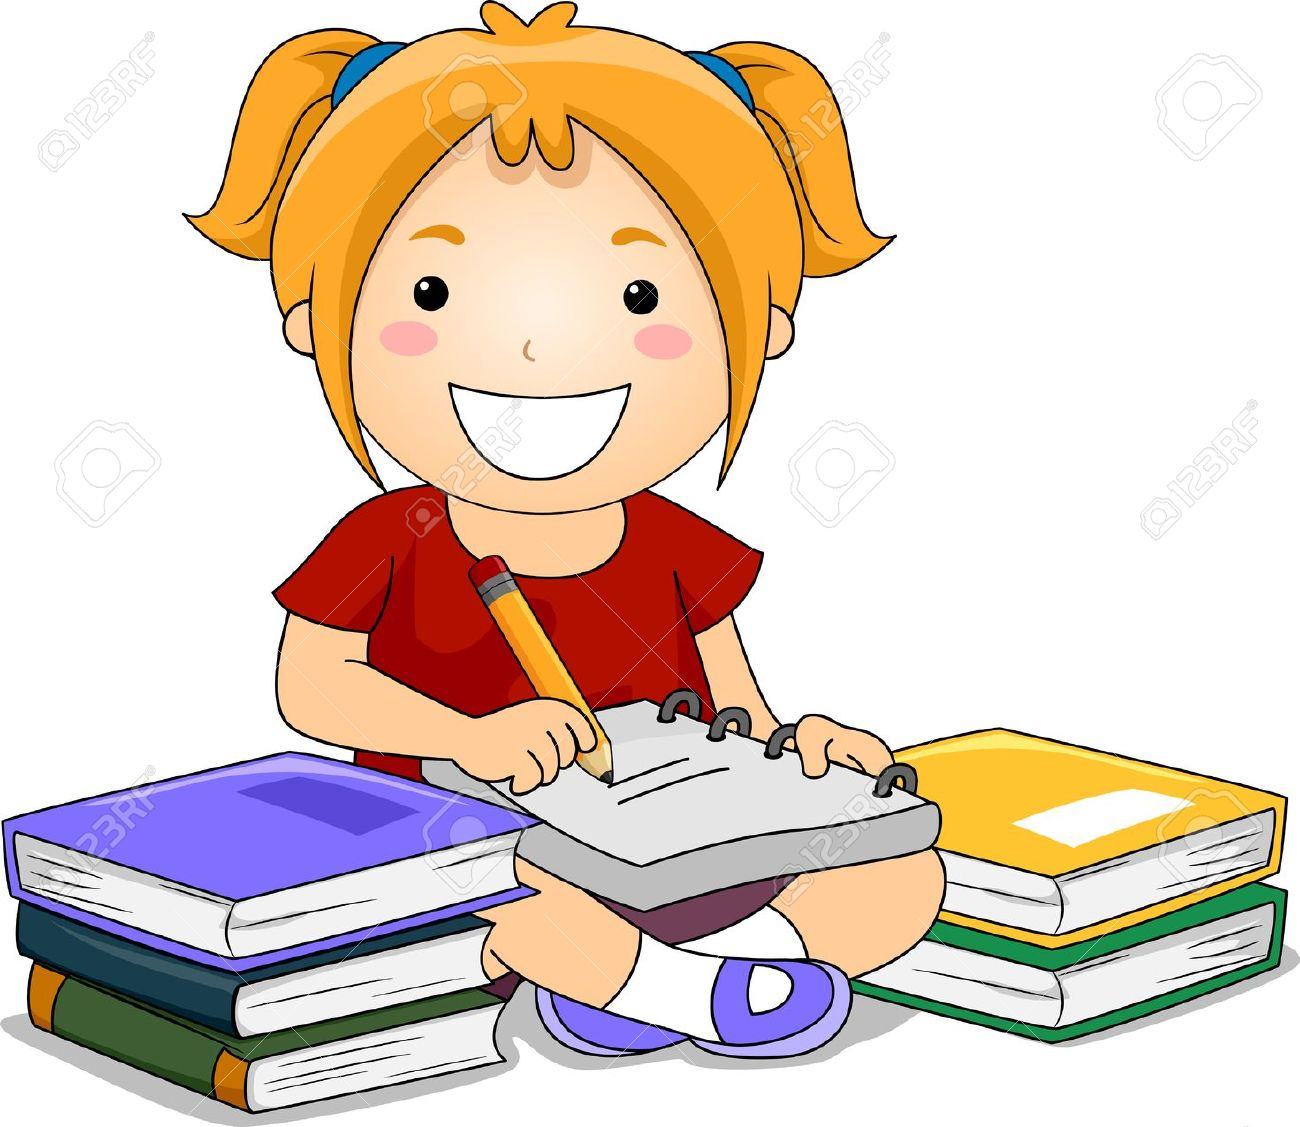 illustration of kid girl writing notes with books on her side stock rh 123rf com child writing clipart free child writing clipart black and white